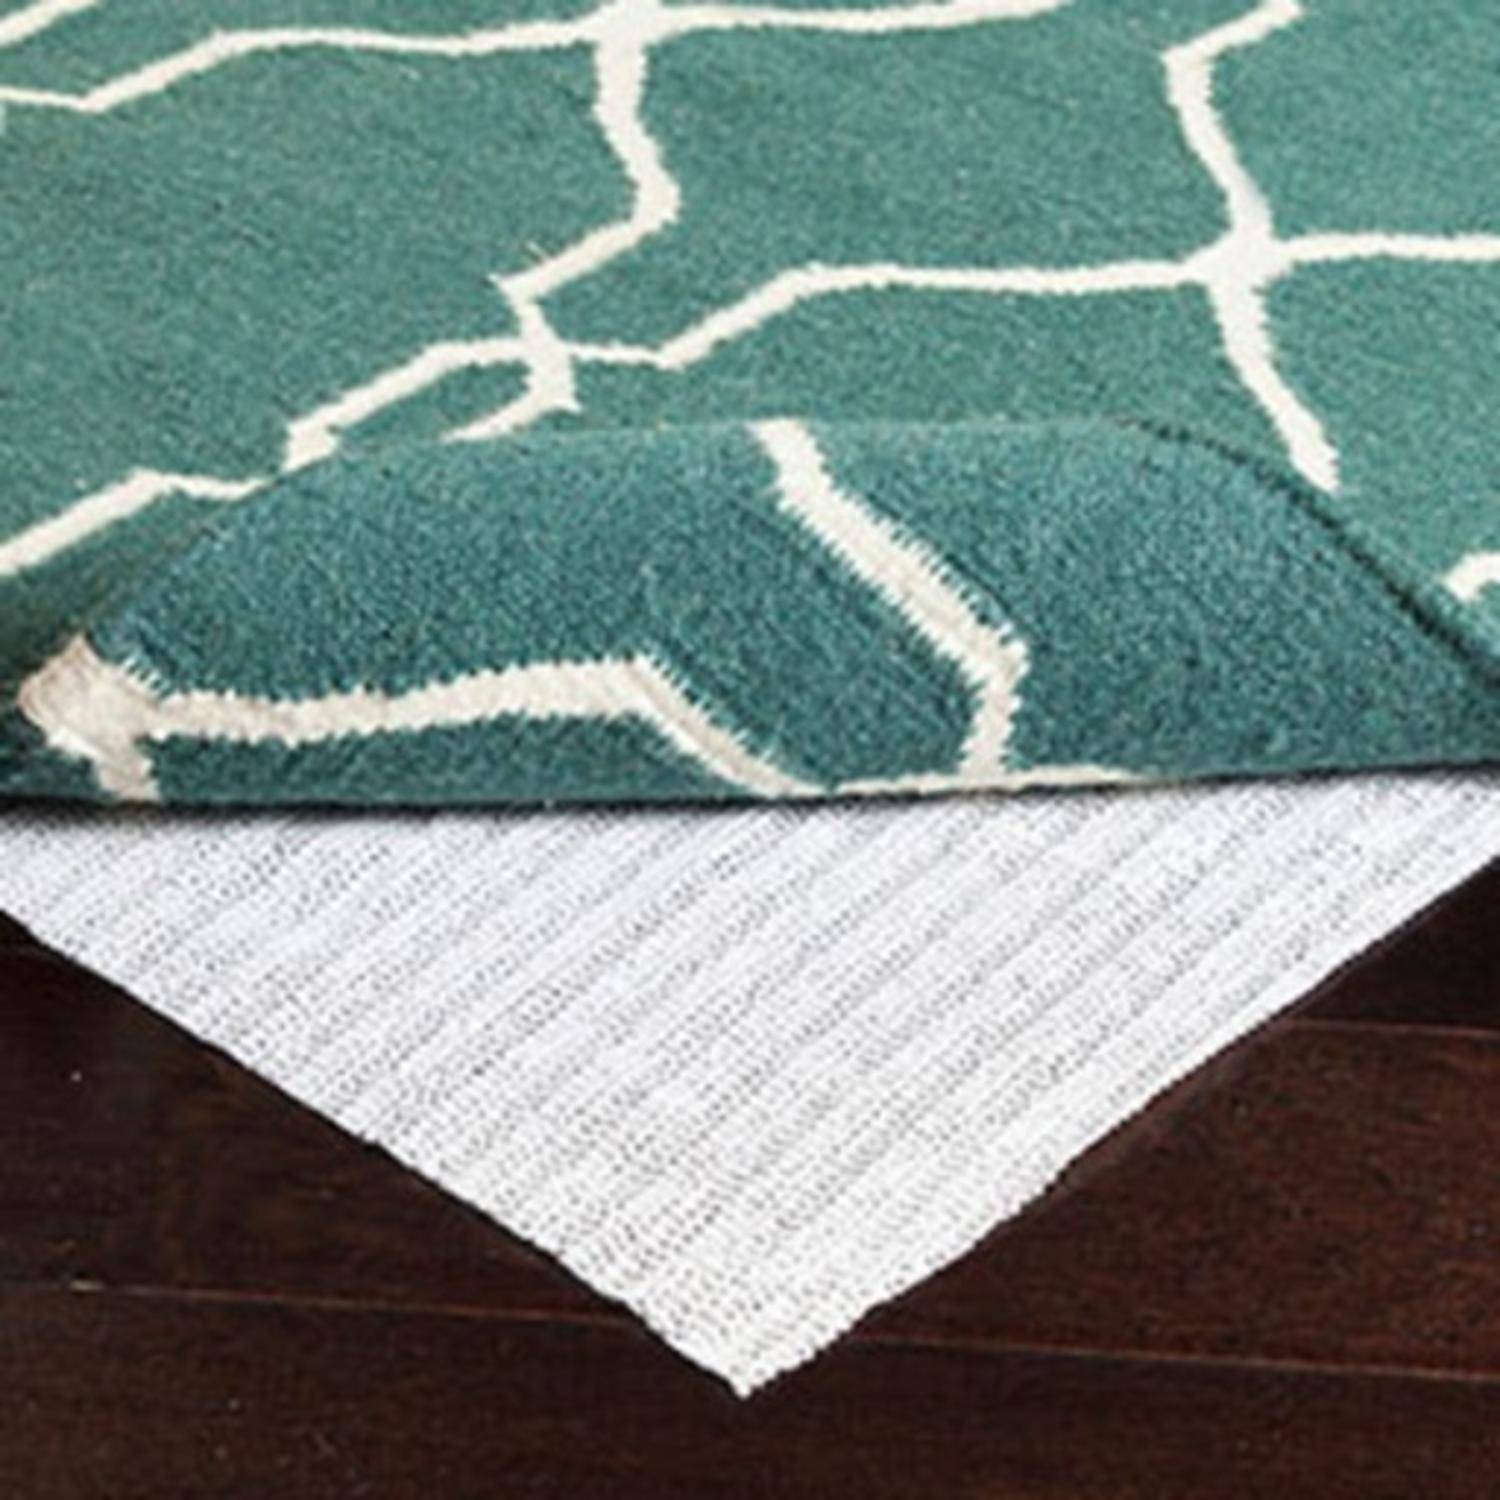 Deluxe Slip Resistant Liner for a 2' x 4' Area Throw Rug